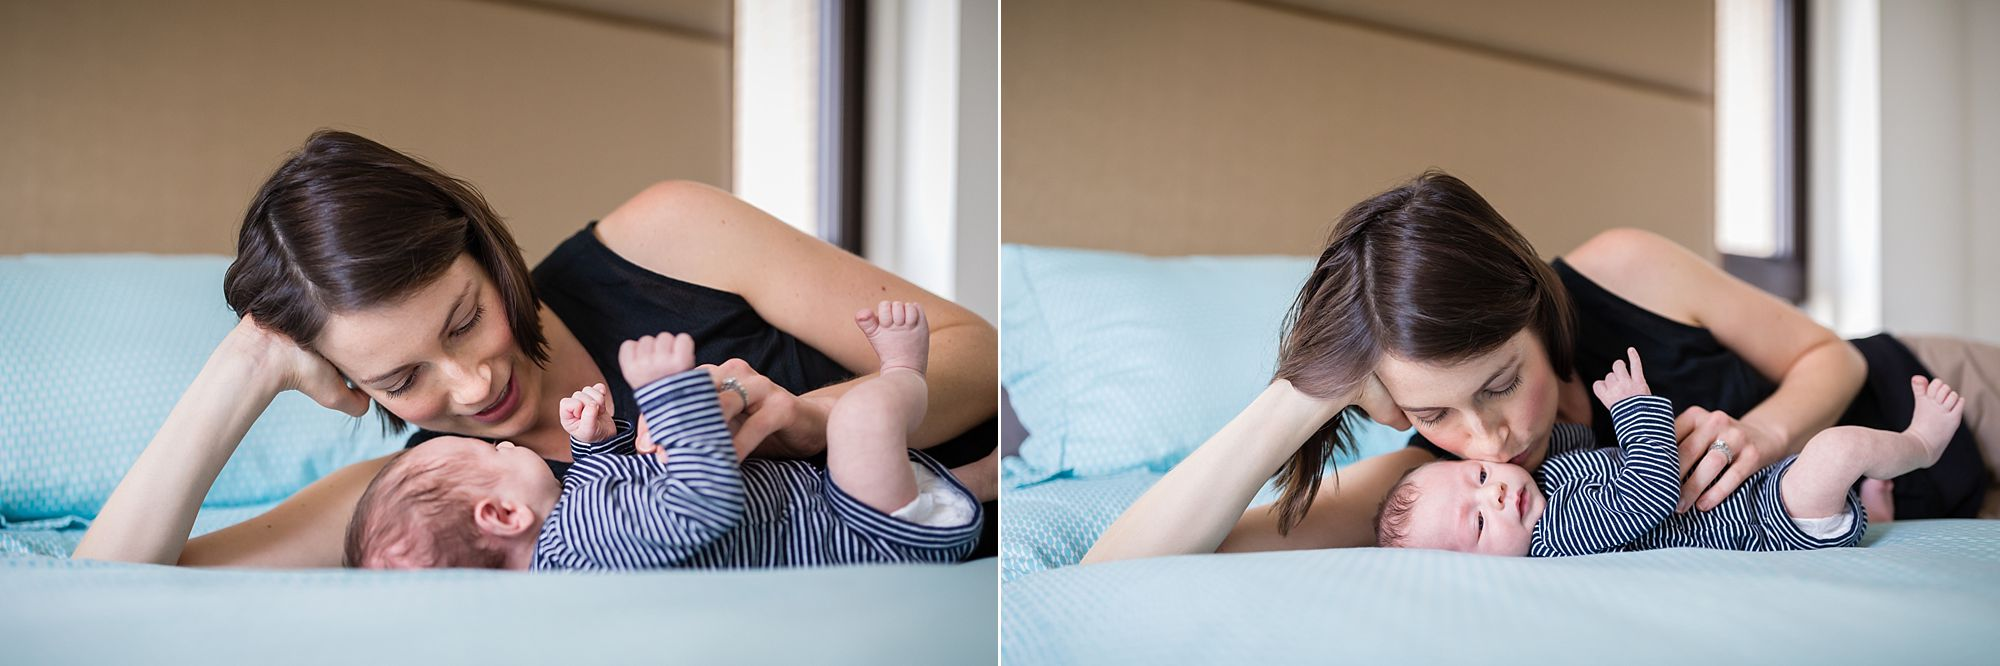 Taiwan_in_home_lifestyle_newborn_photography_hunnicutt_photography_0012